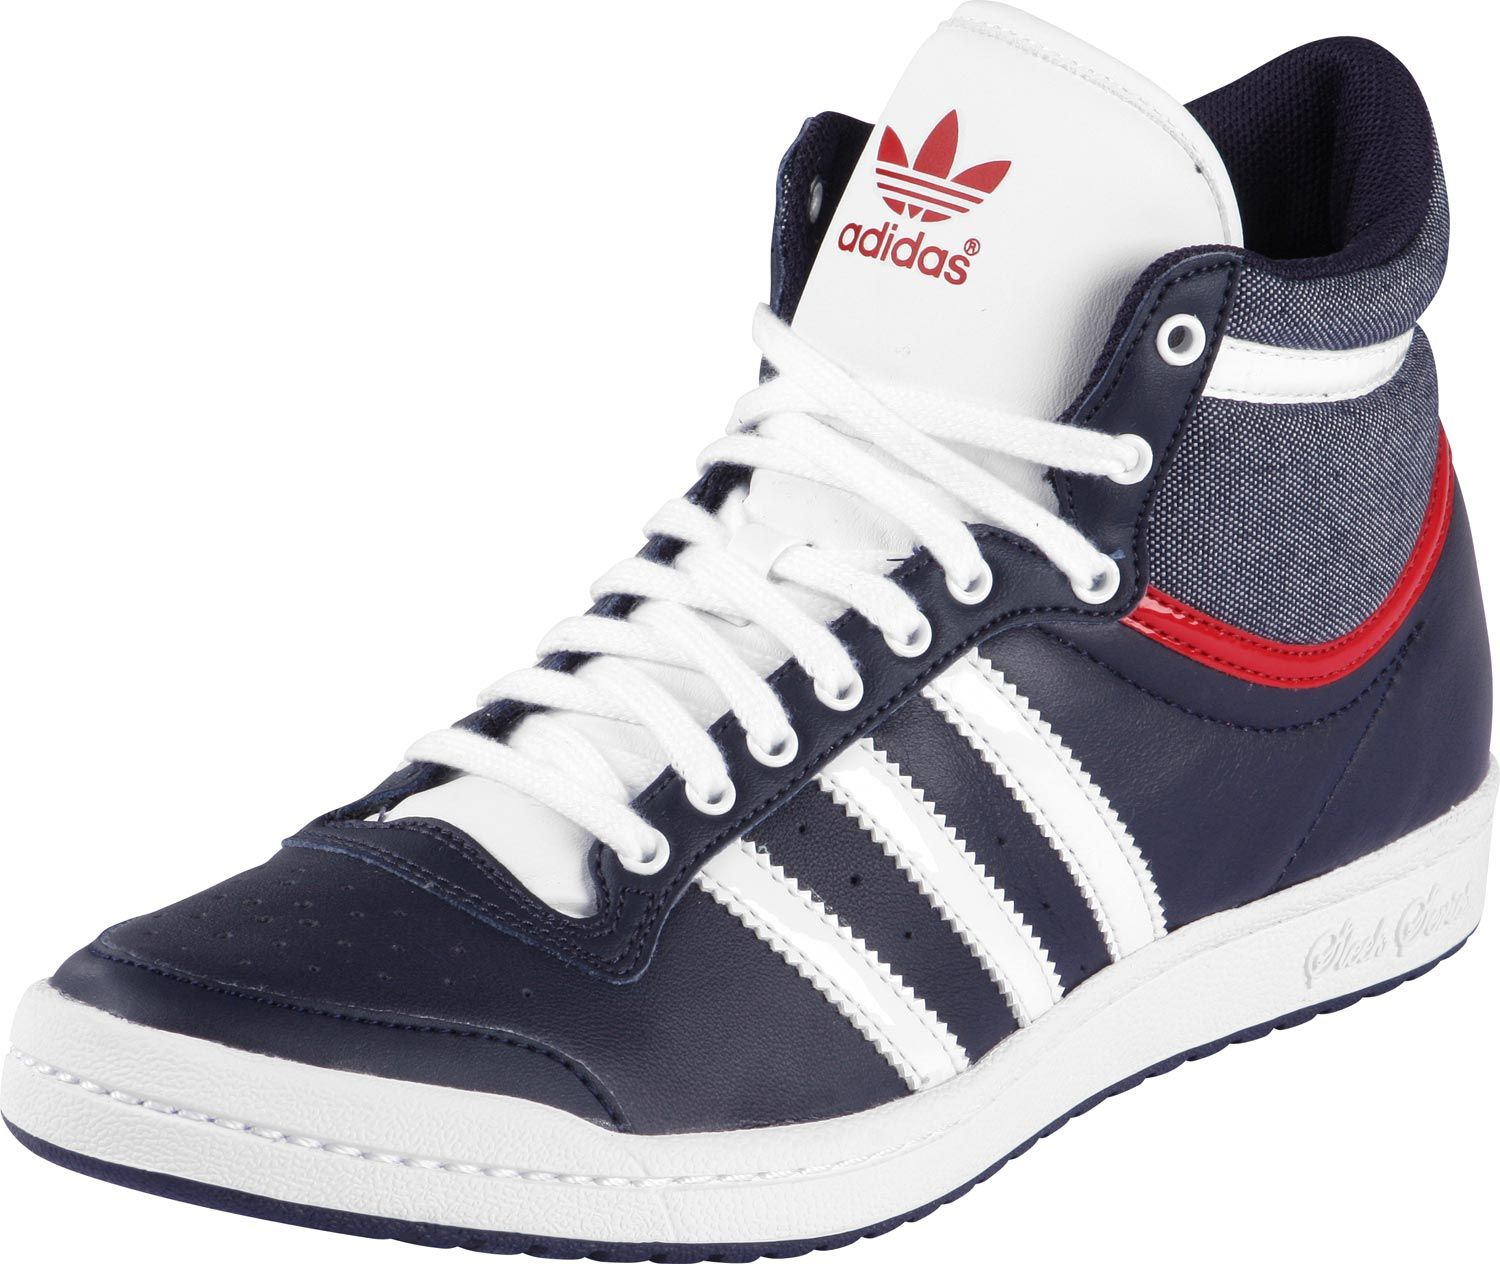 ADIDAS Top Ten Neo White